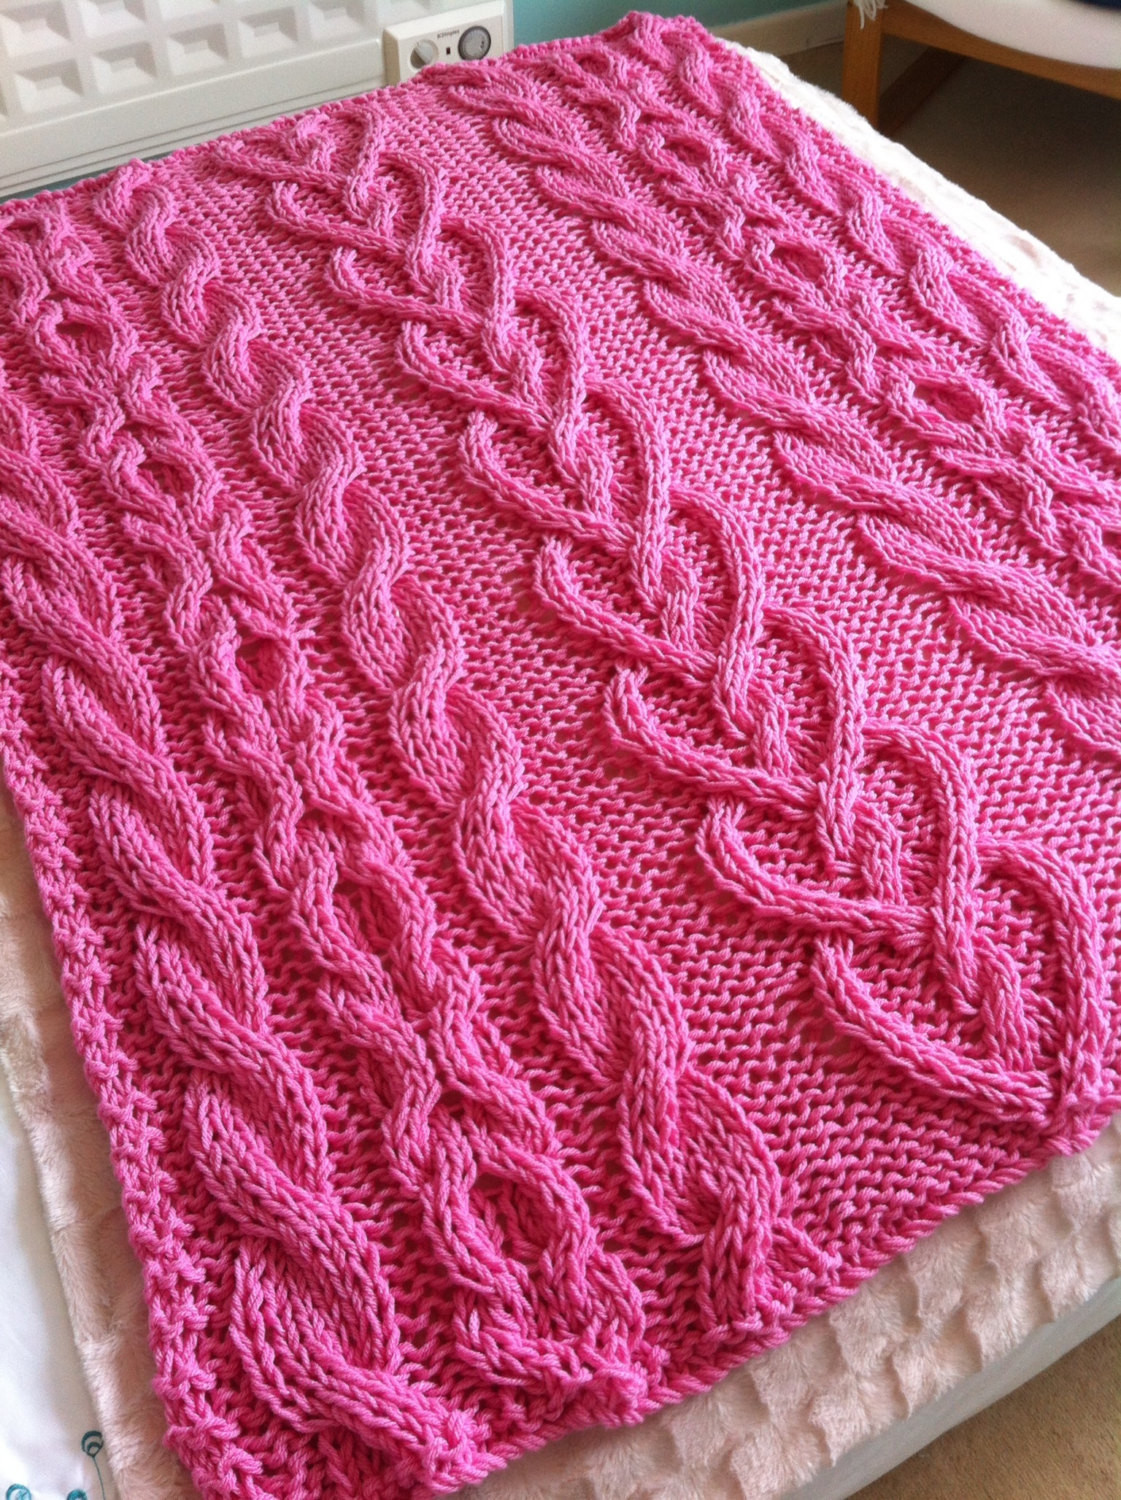 Cable Knit Blanket Best Of Chunky Cable and Hearts Hand Knit Blanket Throw Pretty Of Incredible 49 Pictures Cable Knit Blanket